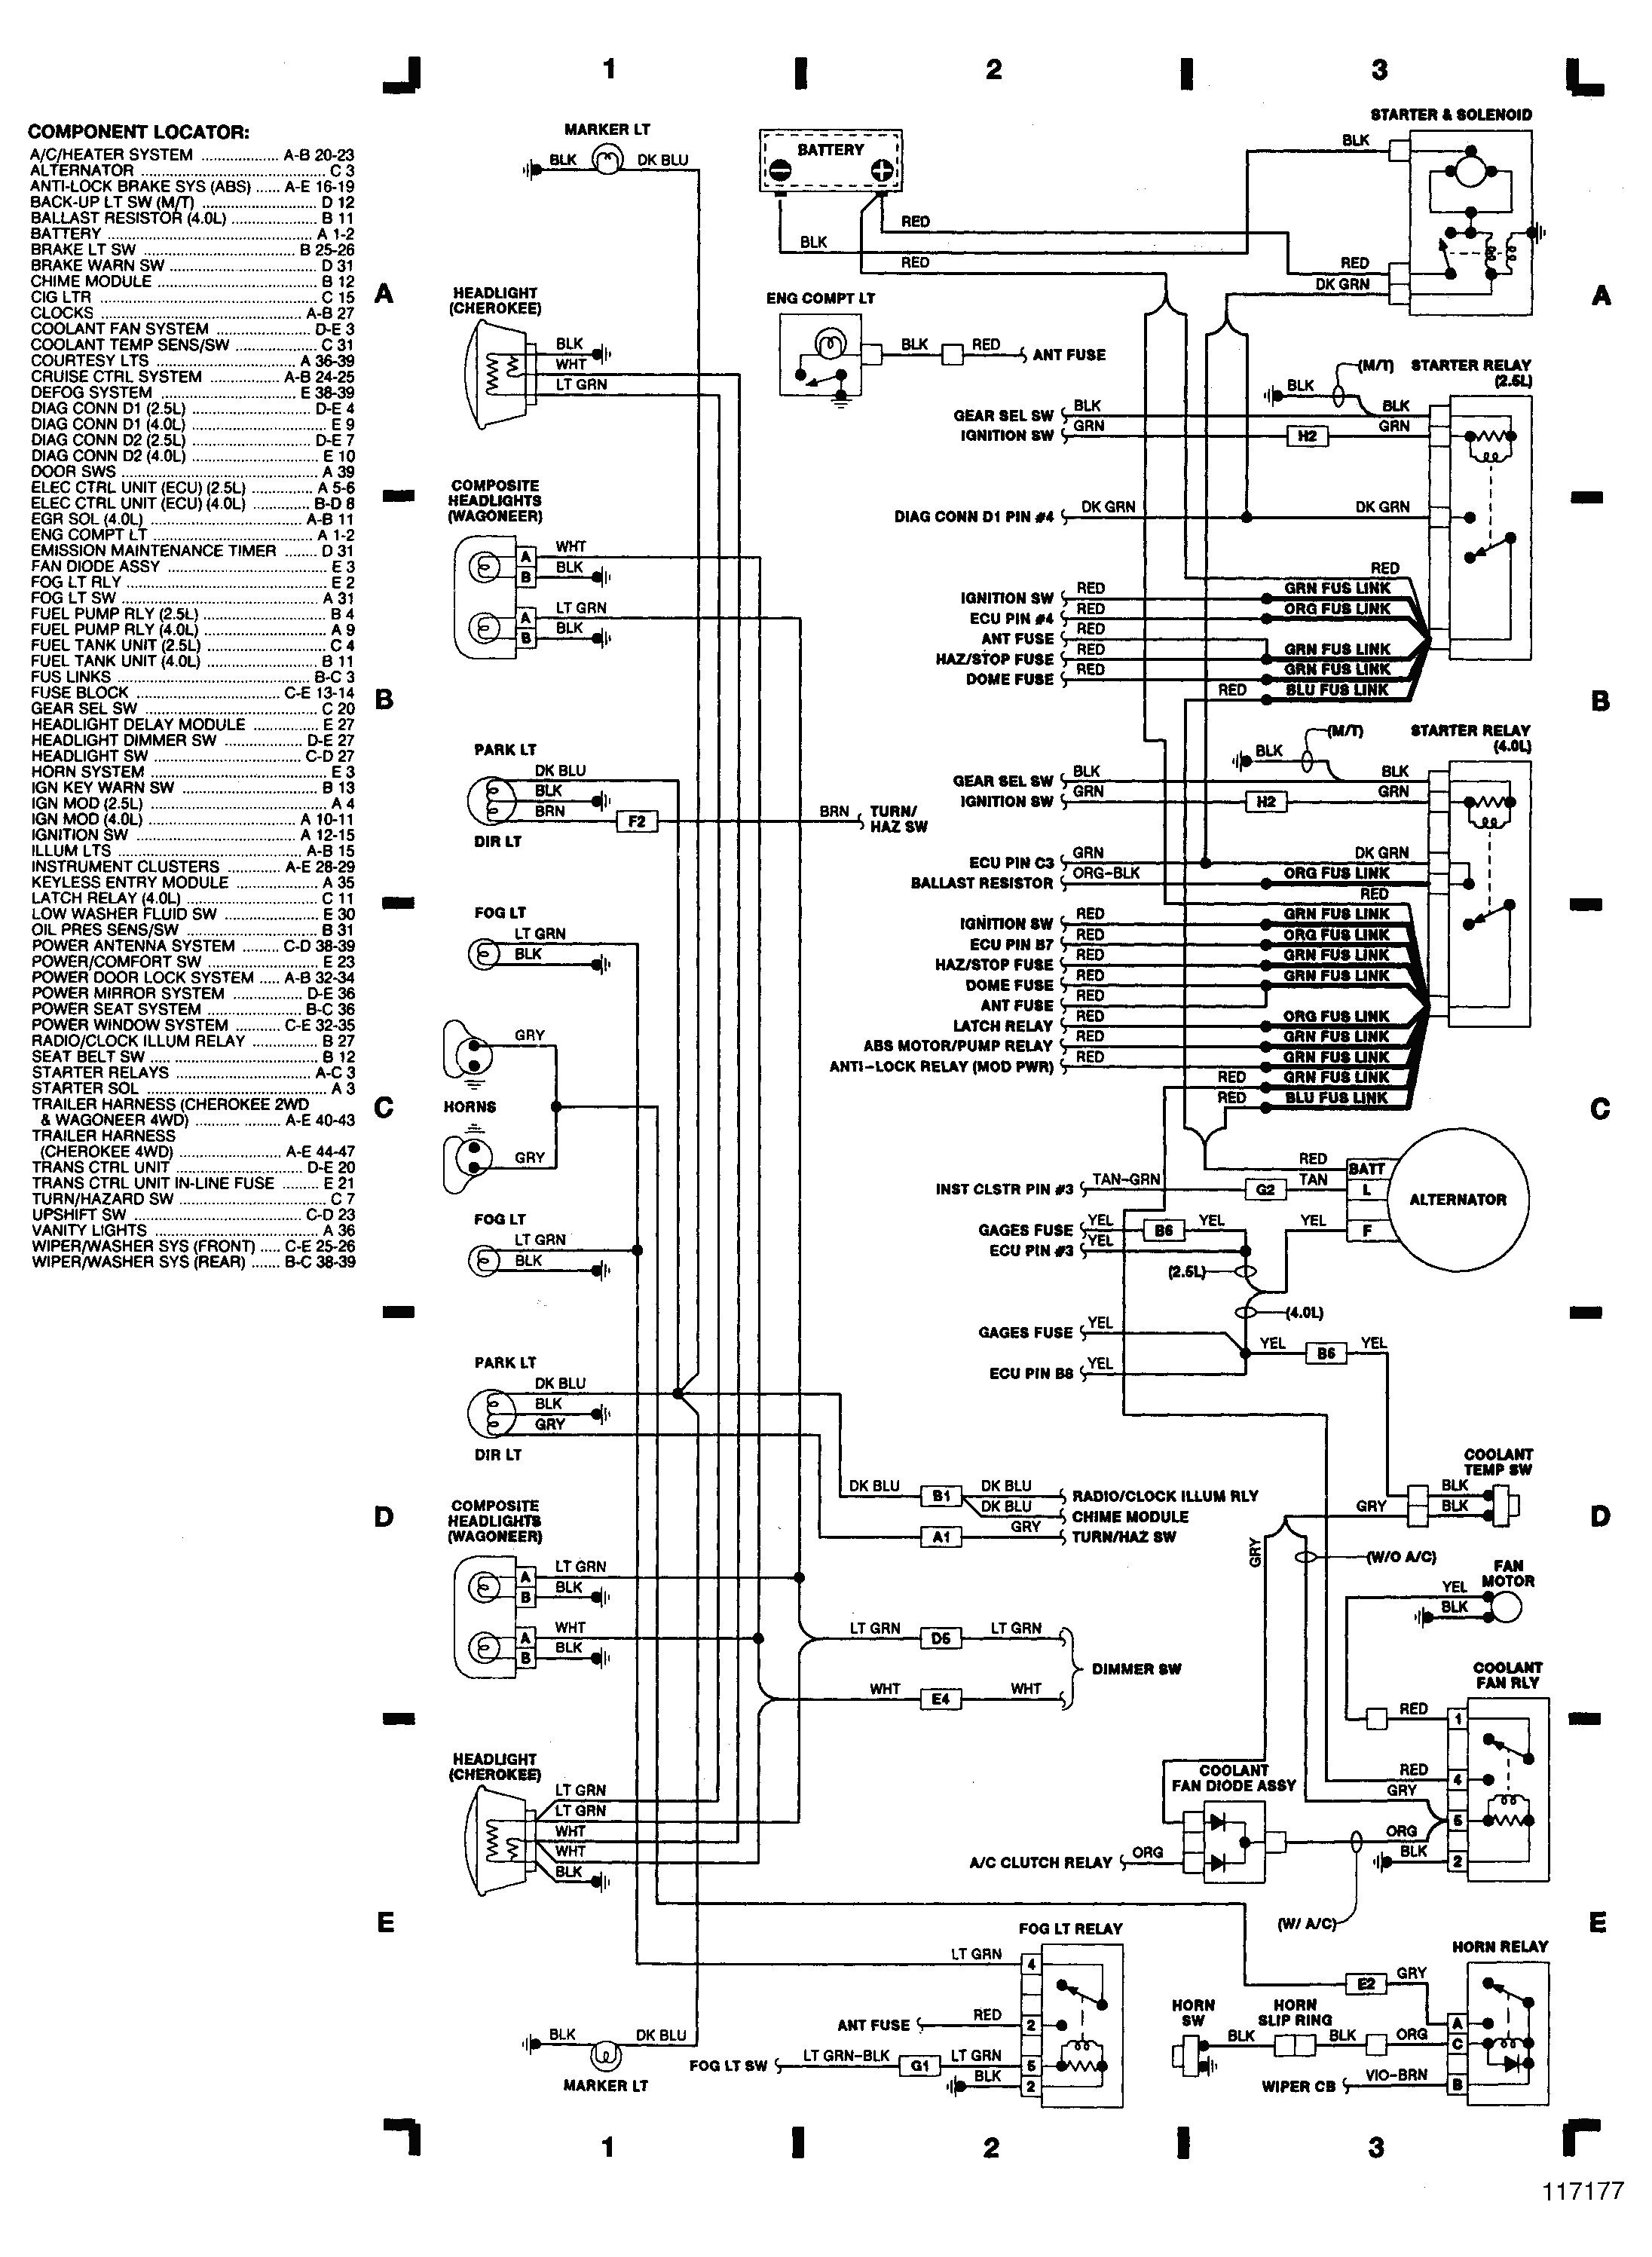 john deere gator ignition switch wiring diagram | free ... john deere a wiring diagram